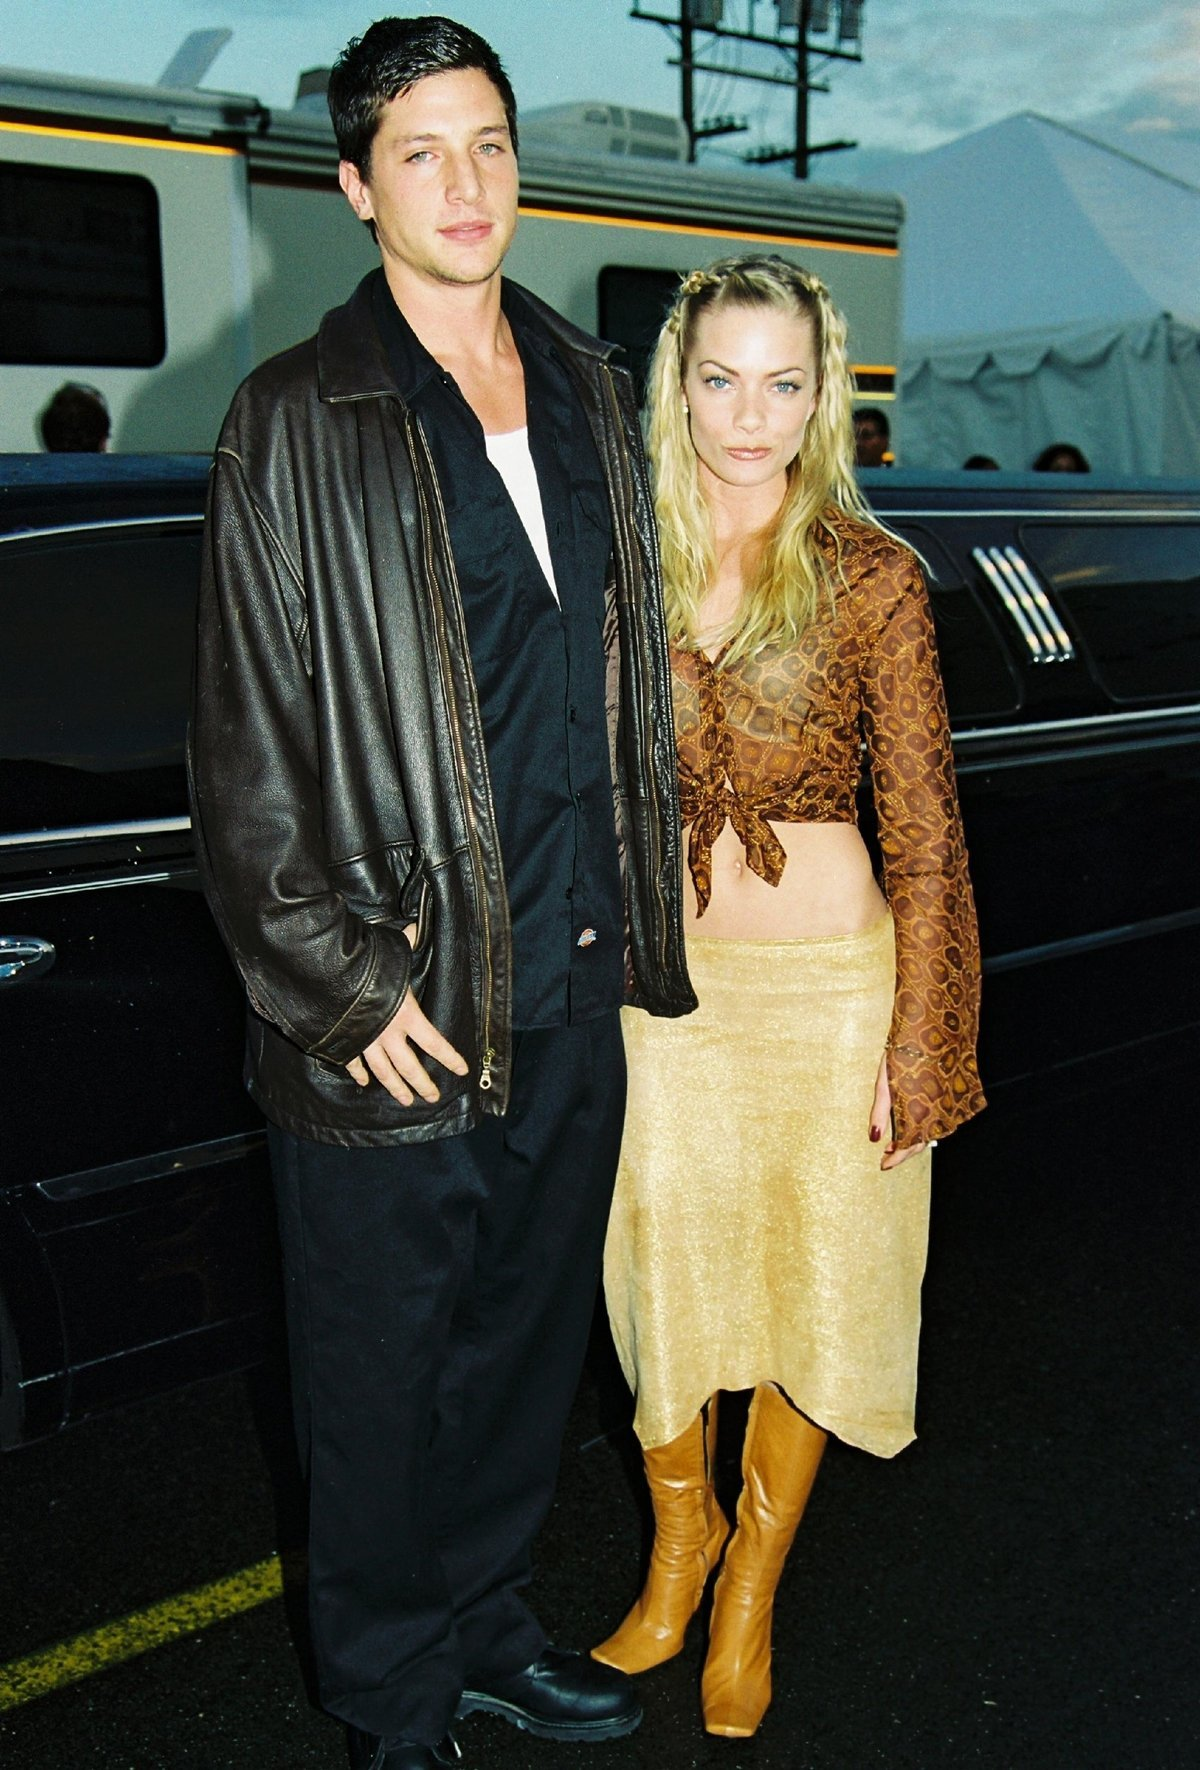 Simon Rex and his girlfriend Jaime Pressly at the 2001 American Music Awards